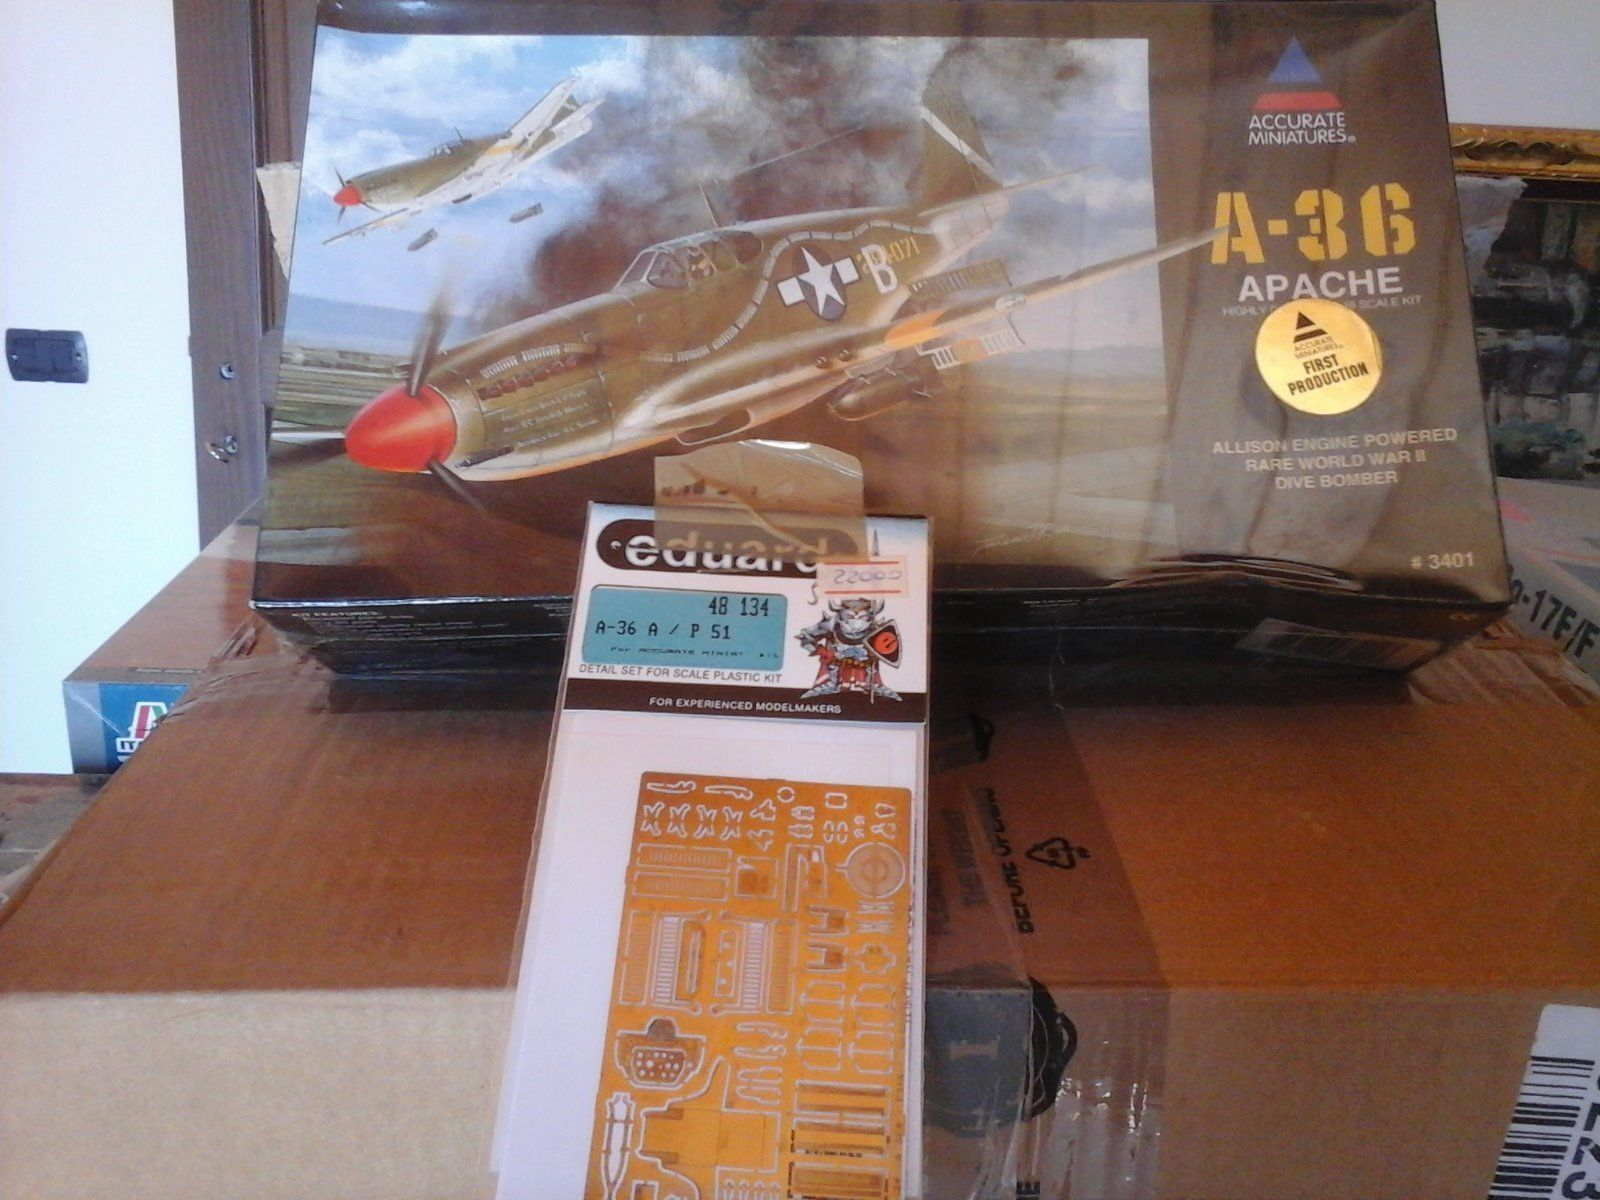 APACHE A 36 DIVE BOMBER ALLISON ENGINE 1 48 SCALE ACCURATE MINIATURES MODELS +PH